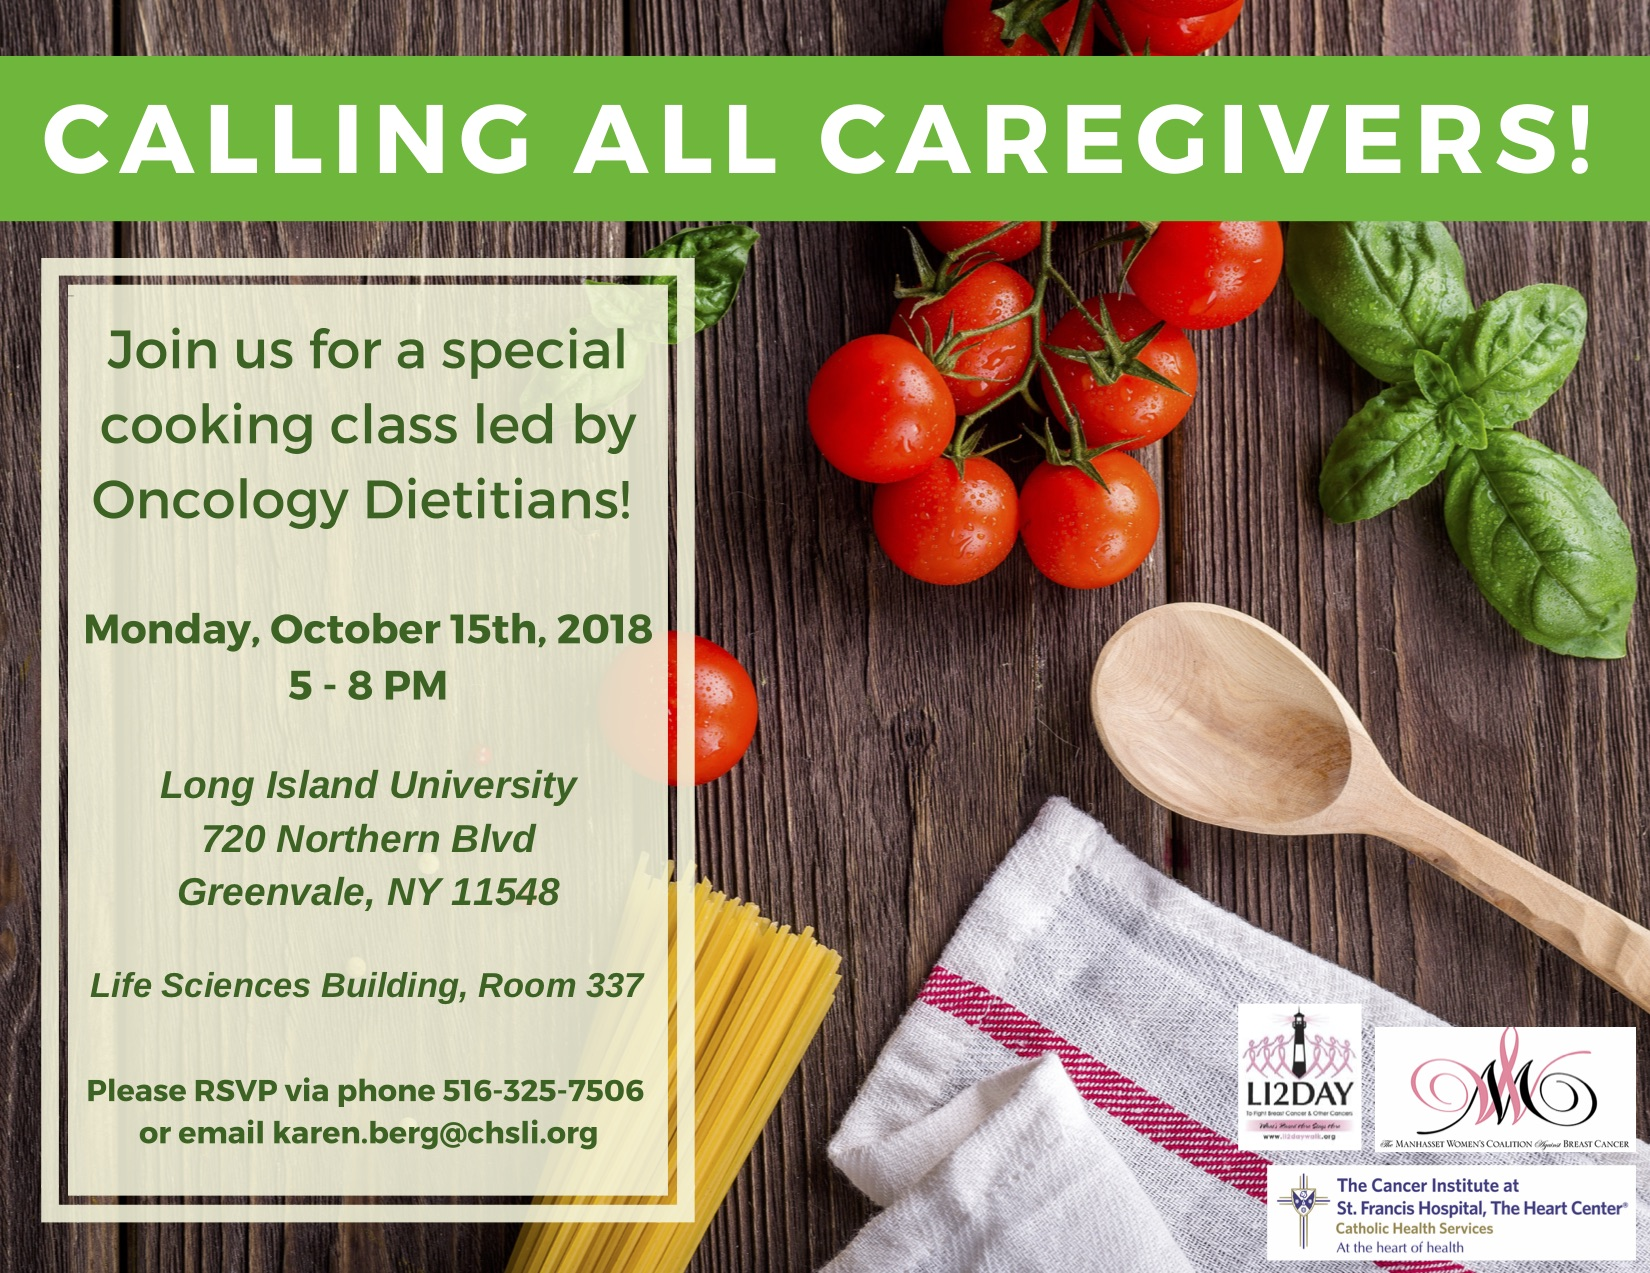 Cooking is Caring: Calling all Caregivers